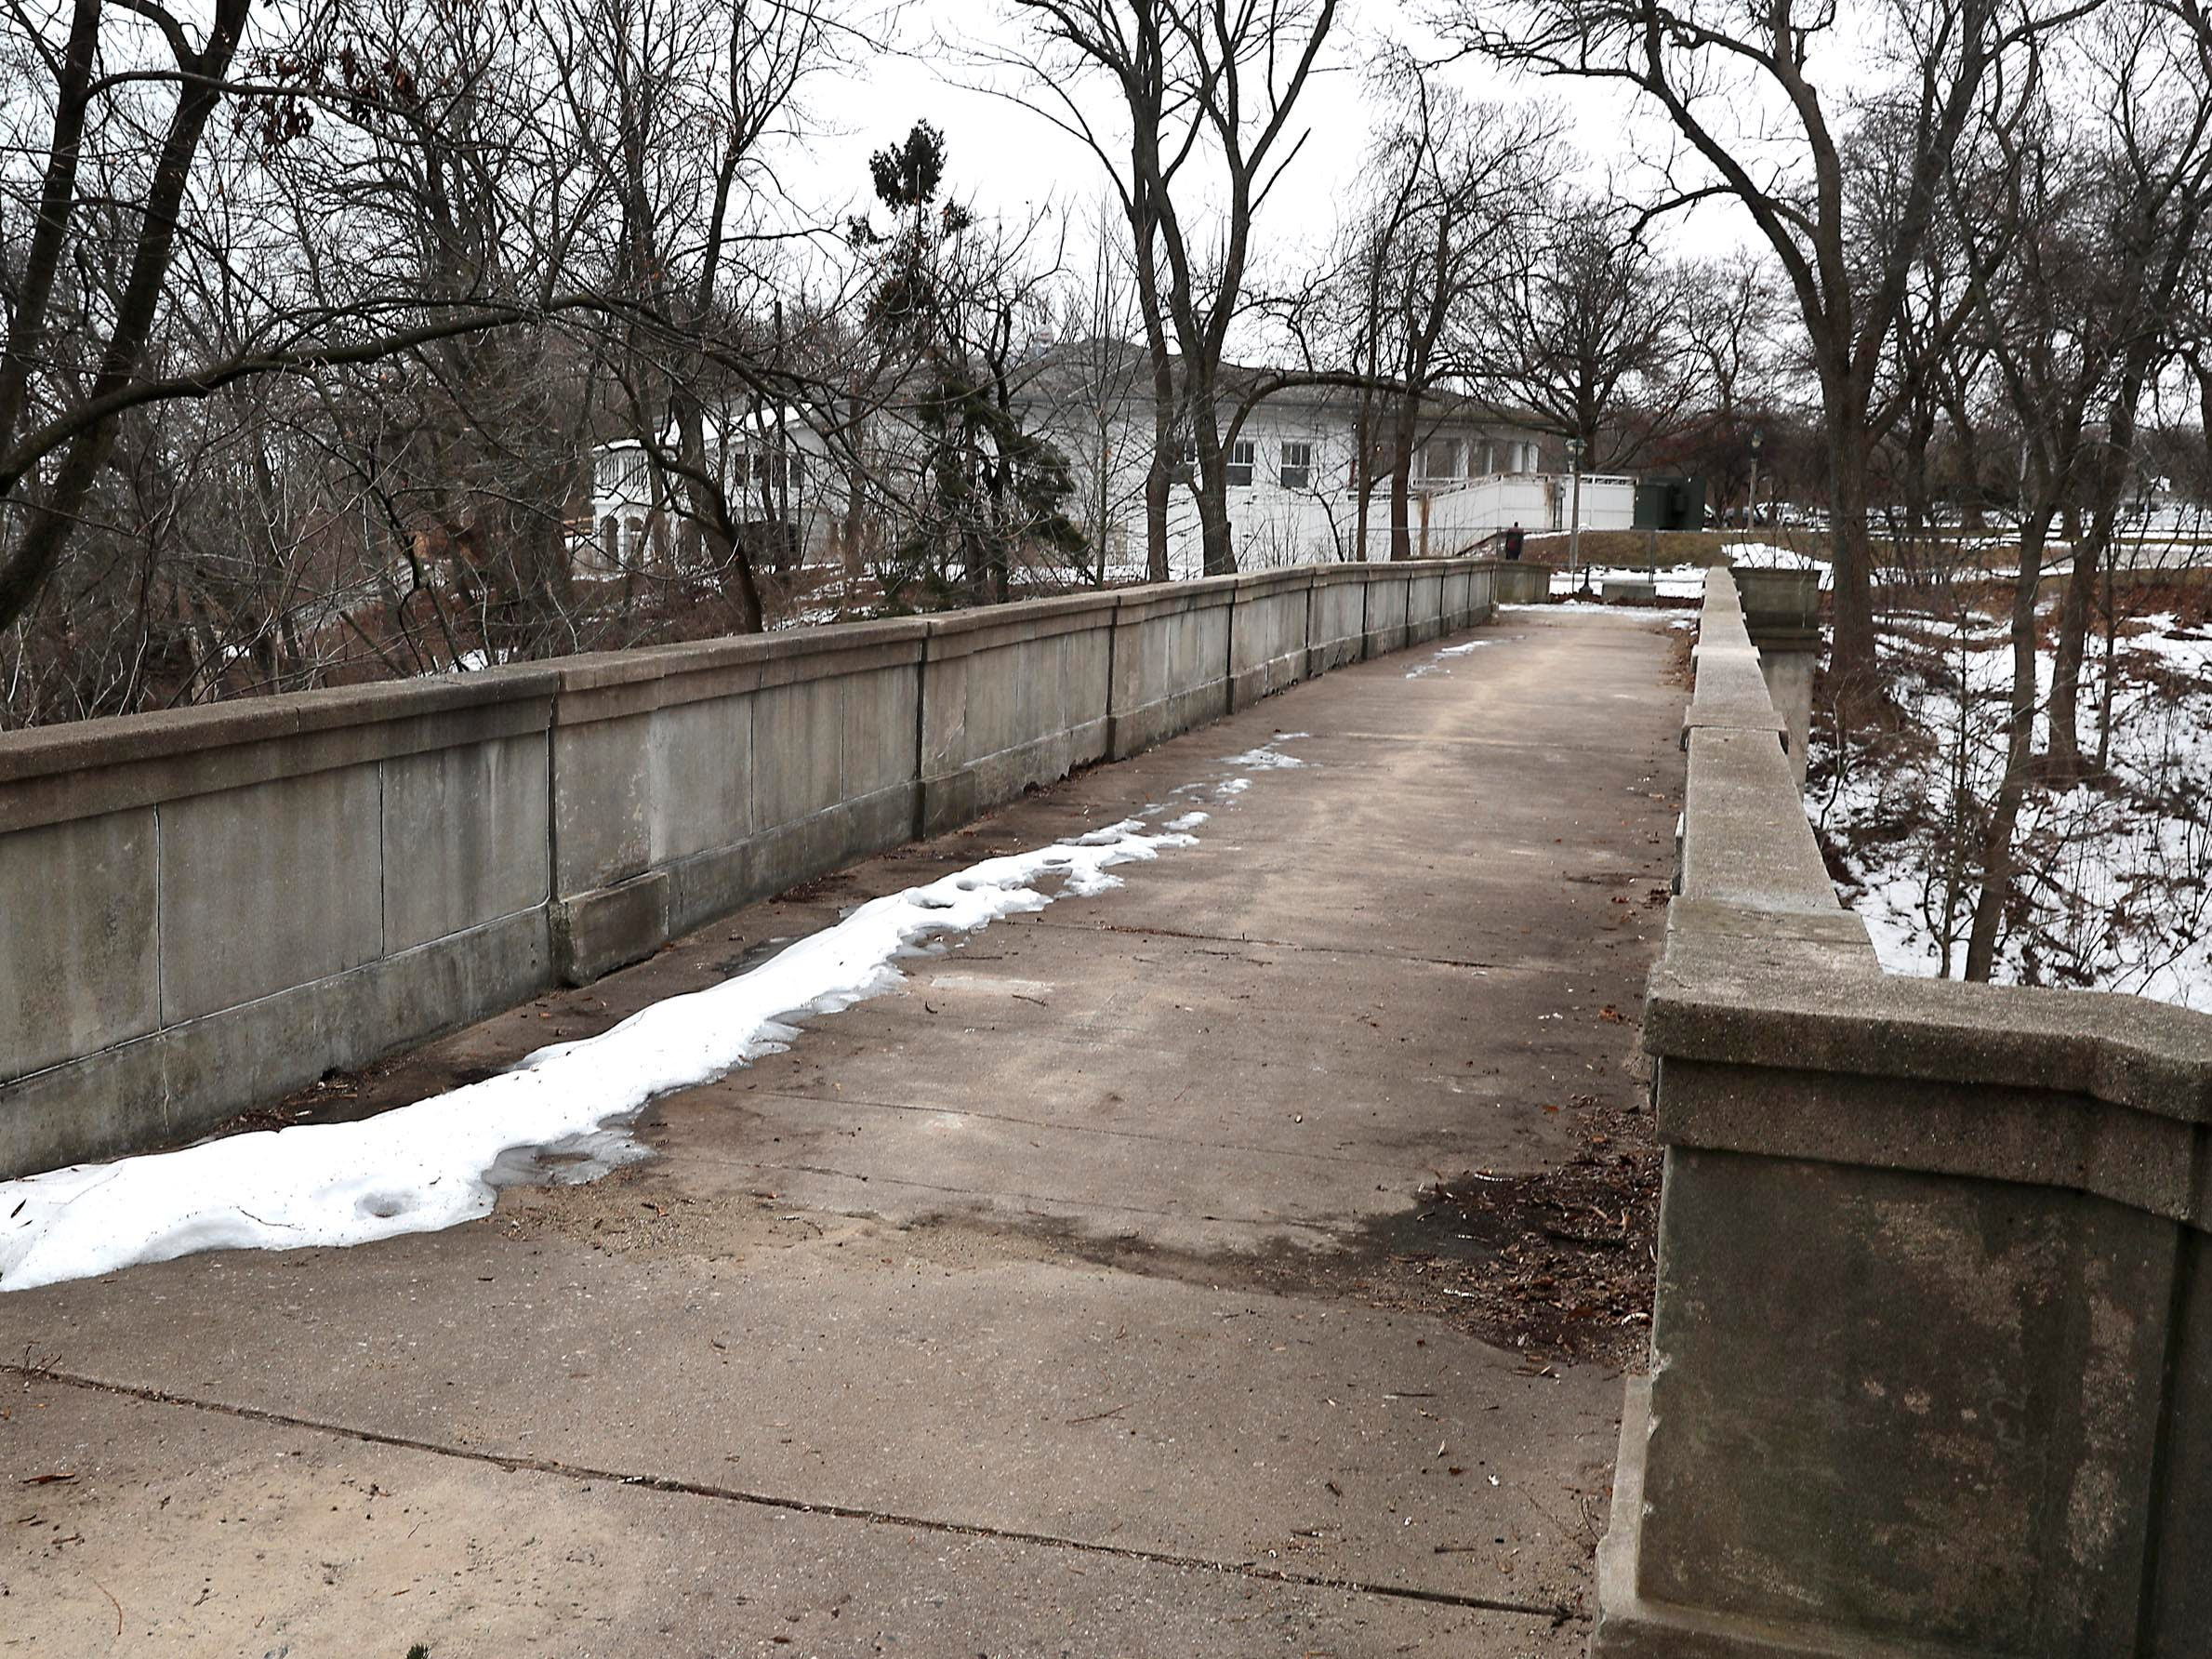 The footbridge in Lake Park over Ravine Road is now off-limits to pedestrians.